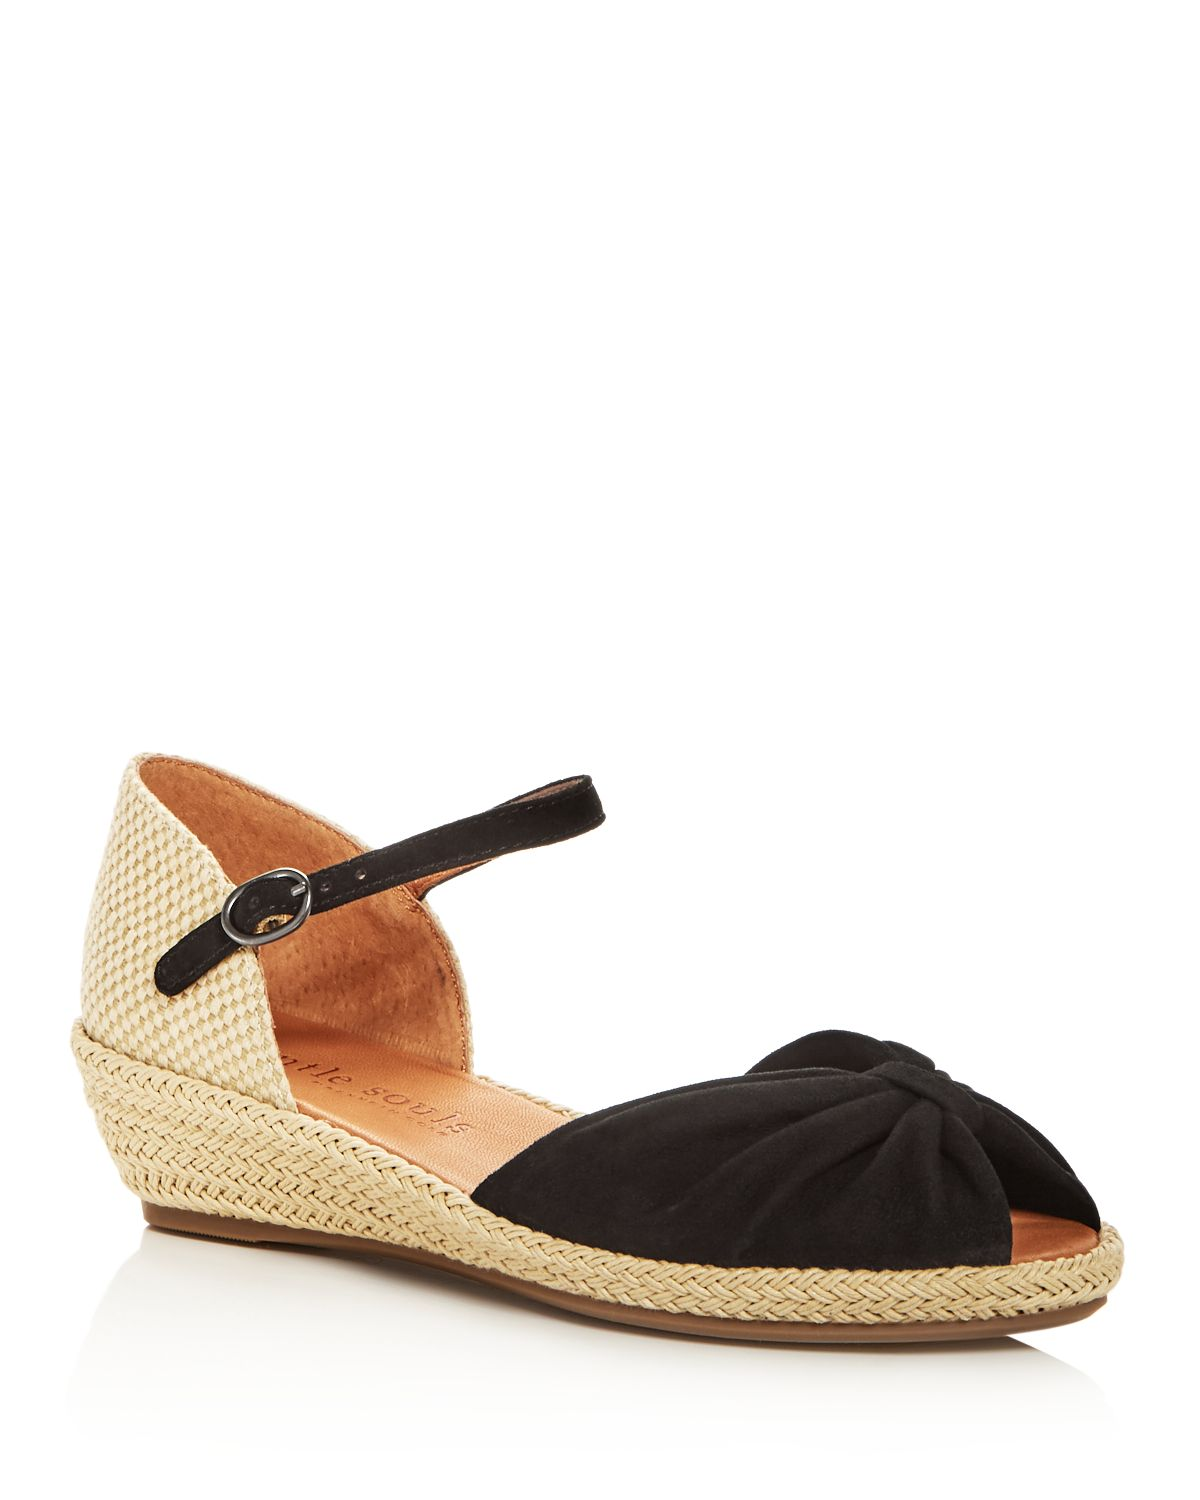 Kenneth Cole Gentle Souls Women's Lucille Suede Demi Wedge Espadrille Sandals